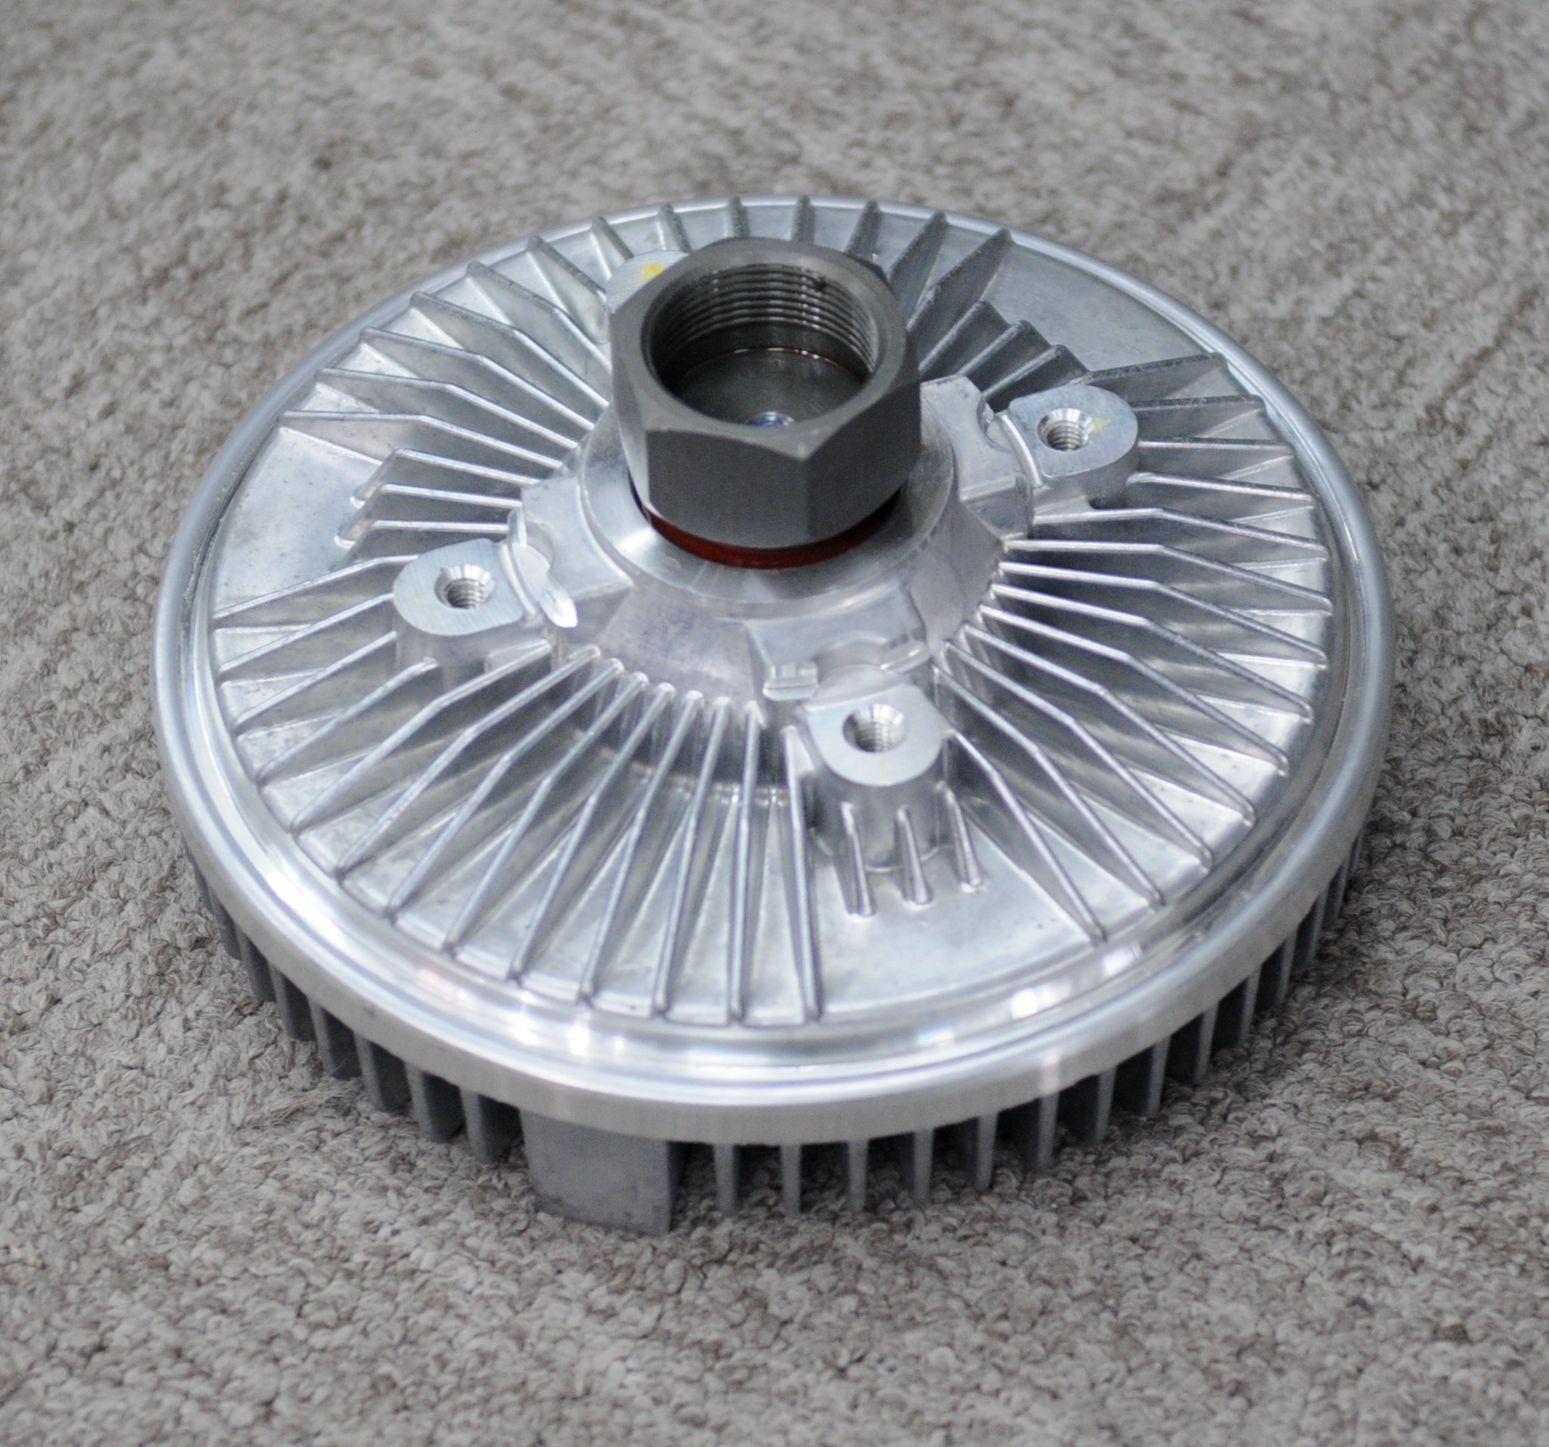 hight resolution of 2019 radiator cooling fan clutch for ford ranger explorer mazda b4000 pickup truck from reach autoparts 44 49 dhgate com